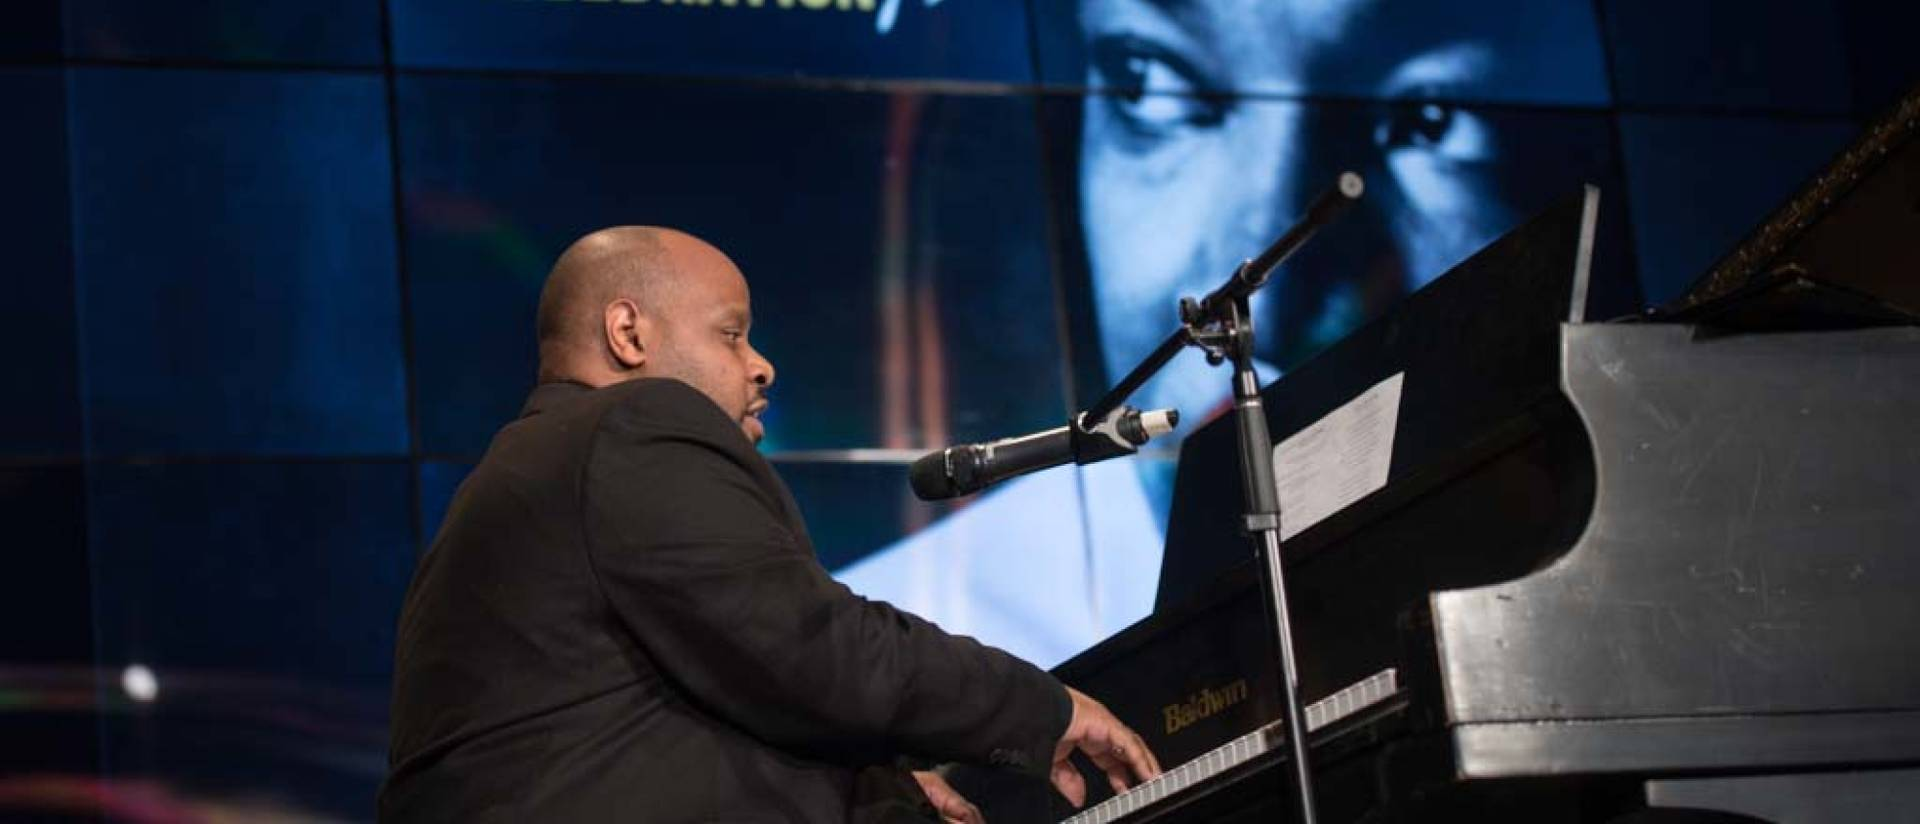 Dr. Frank Watkins performs at UW-Eau Claire Dr. Martin Luther King Jr. Celebration